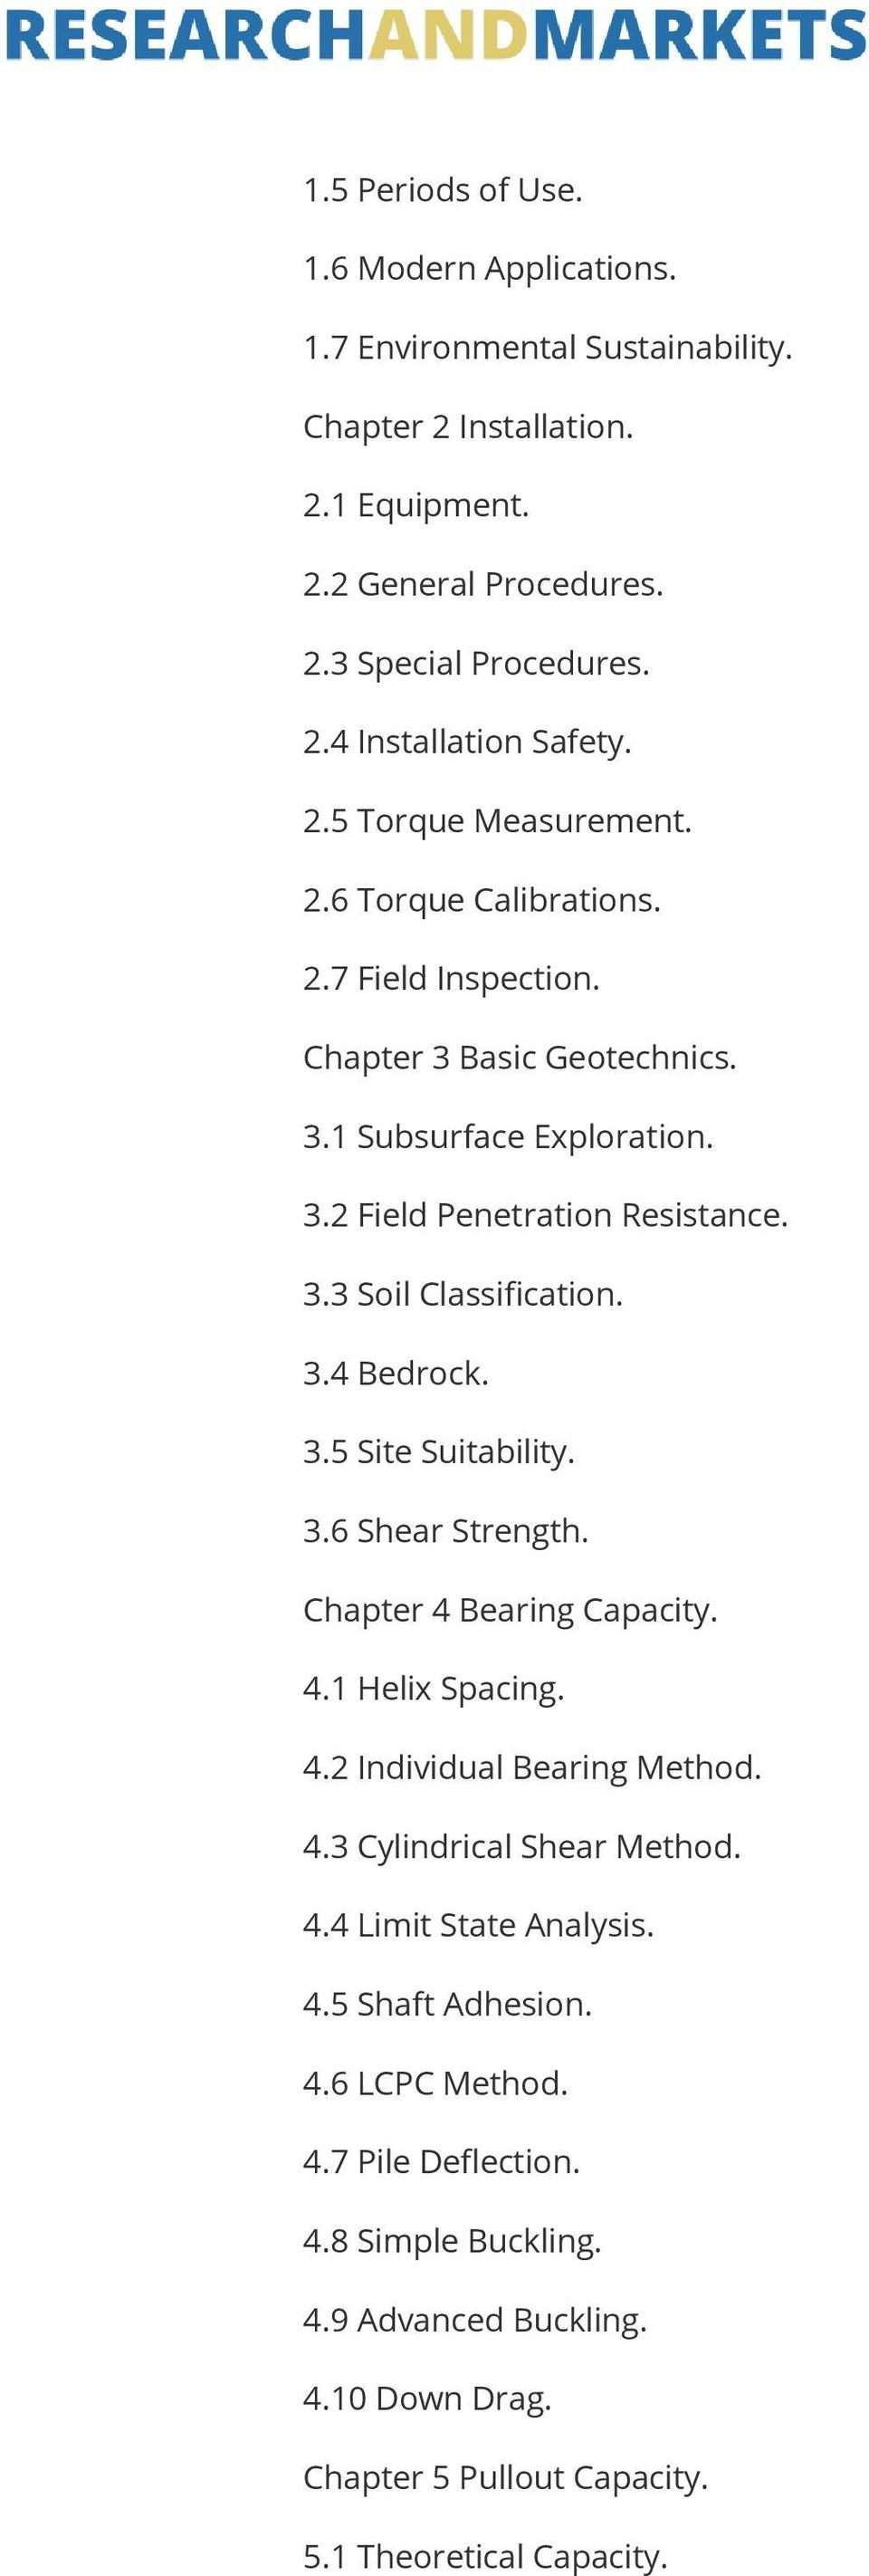 3.4 Bedrock. 3.5 Site Suitability. 3.6 Shear Strength. Chapter 4 Bearing Capacity. 4.1 Helix Spacing. 4.2 Individual Bearing Method. 4.3 Cylindrical Shear Method. 4.4 Limit State Analysis.